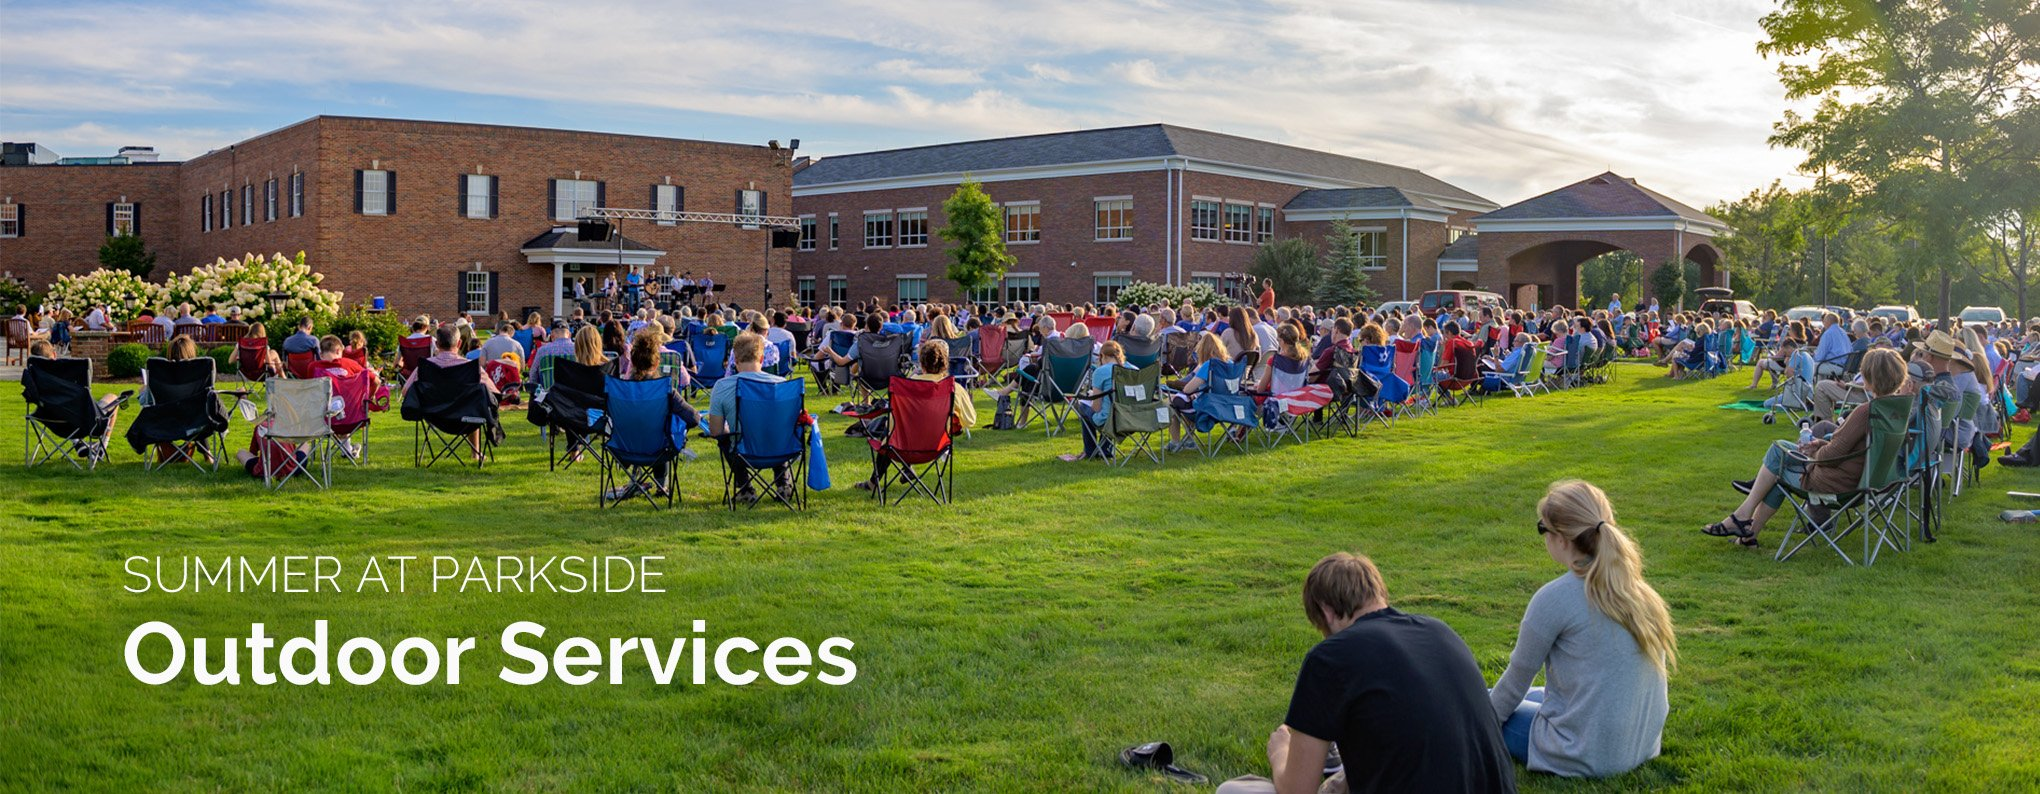 Outdoor Services PKS Header.jpg